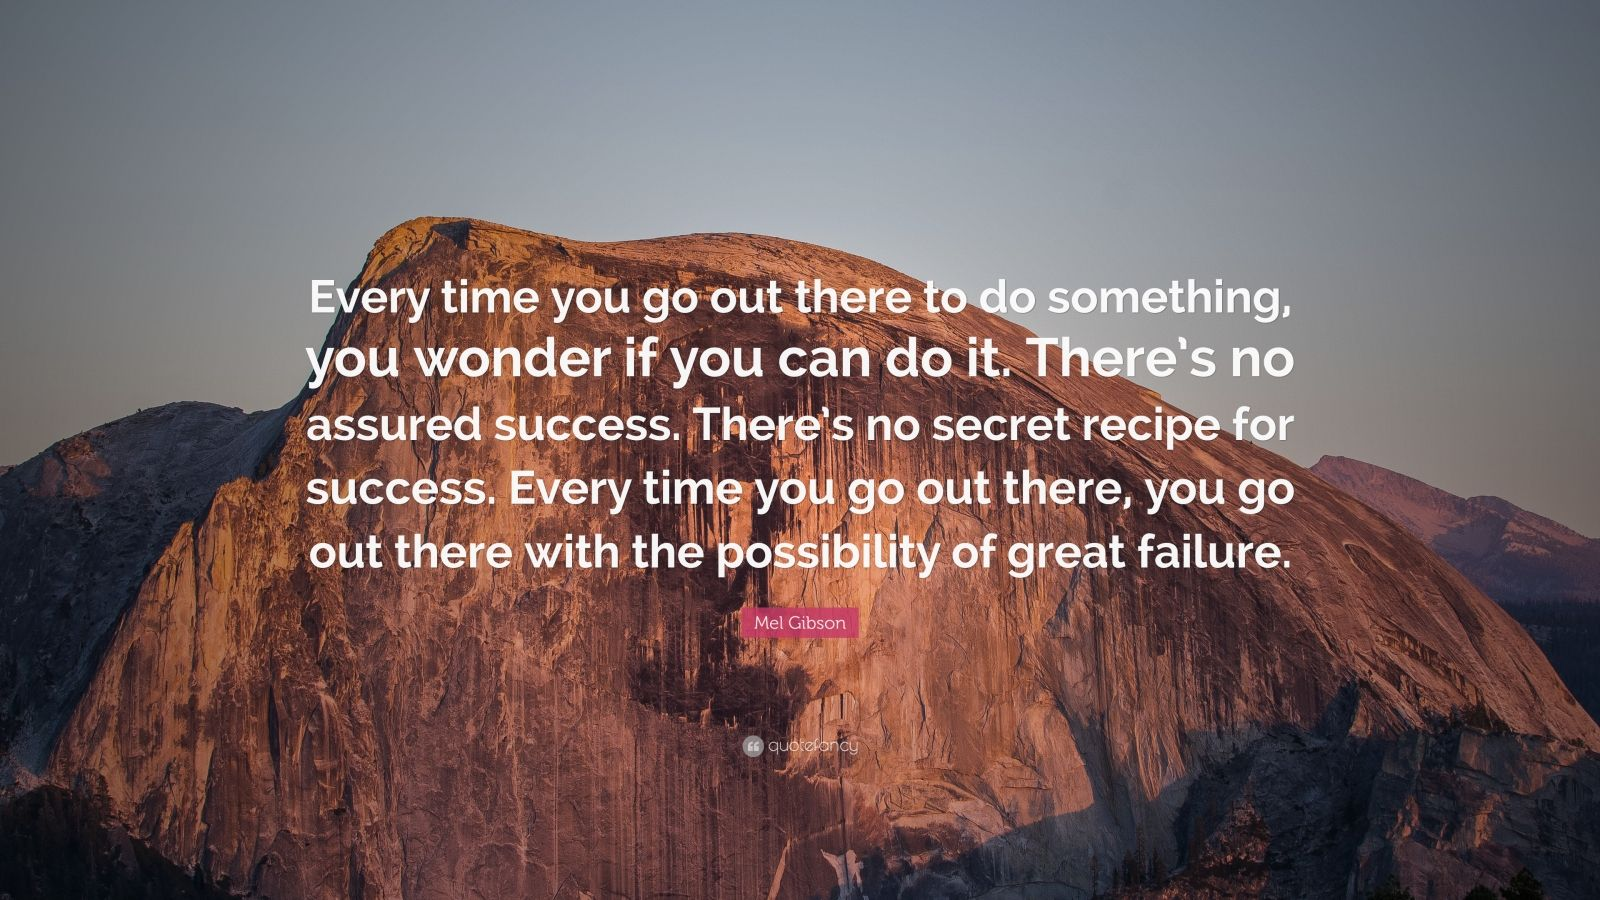 """Mel Gibson Quote: """"Every time you go out there to do something, you wonder if you can do it. There's no assured success. There's no secret recipe for success. Every time you go out there, you go out there with the possibility of great failure."""""""